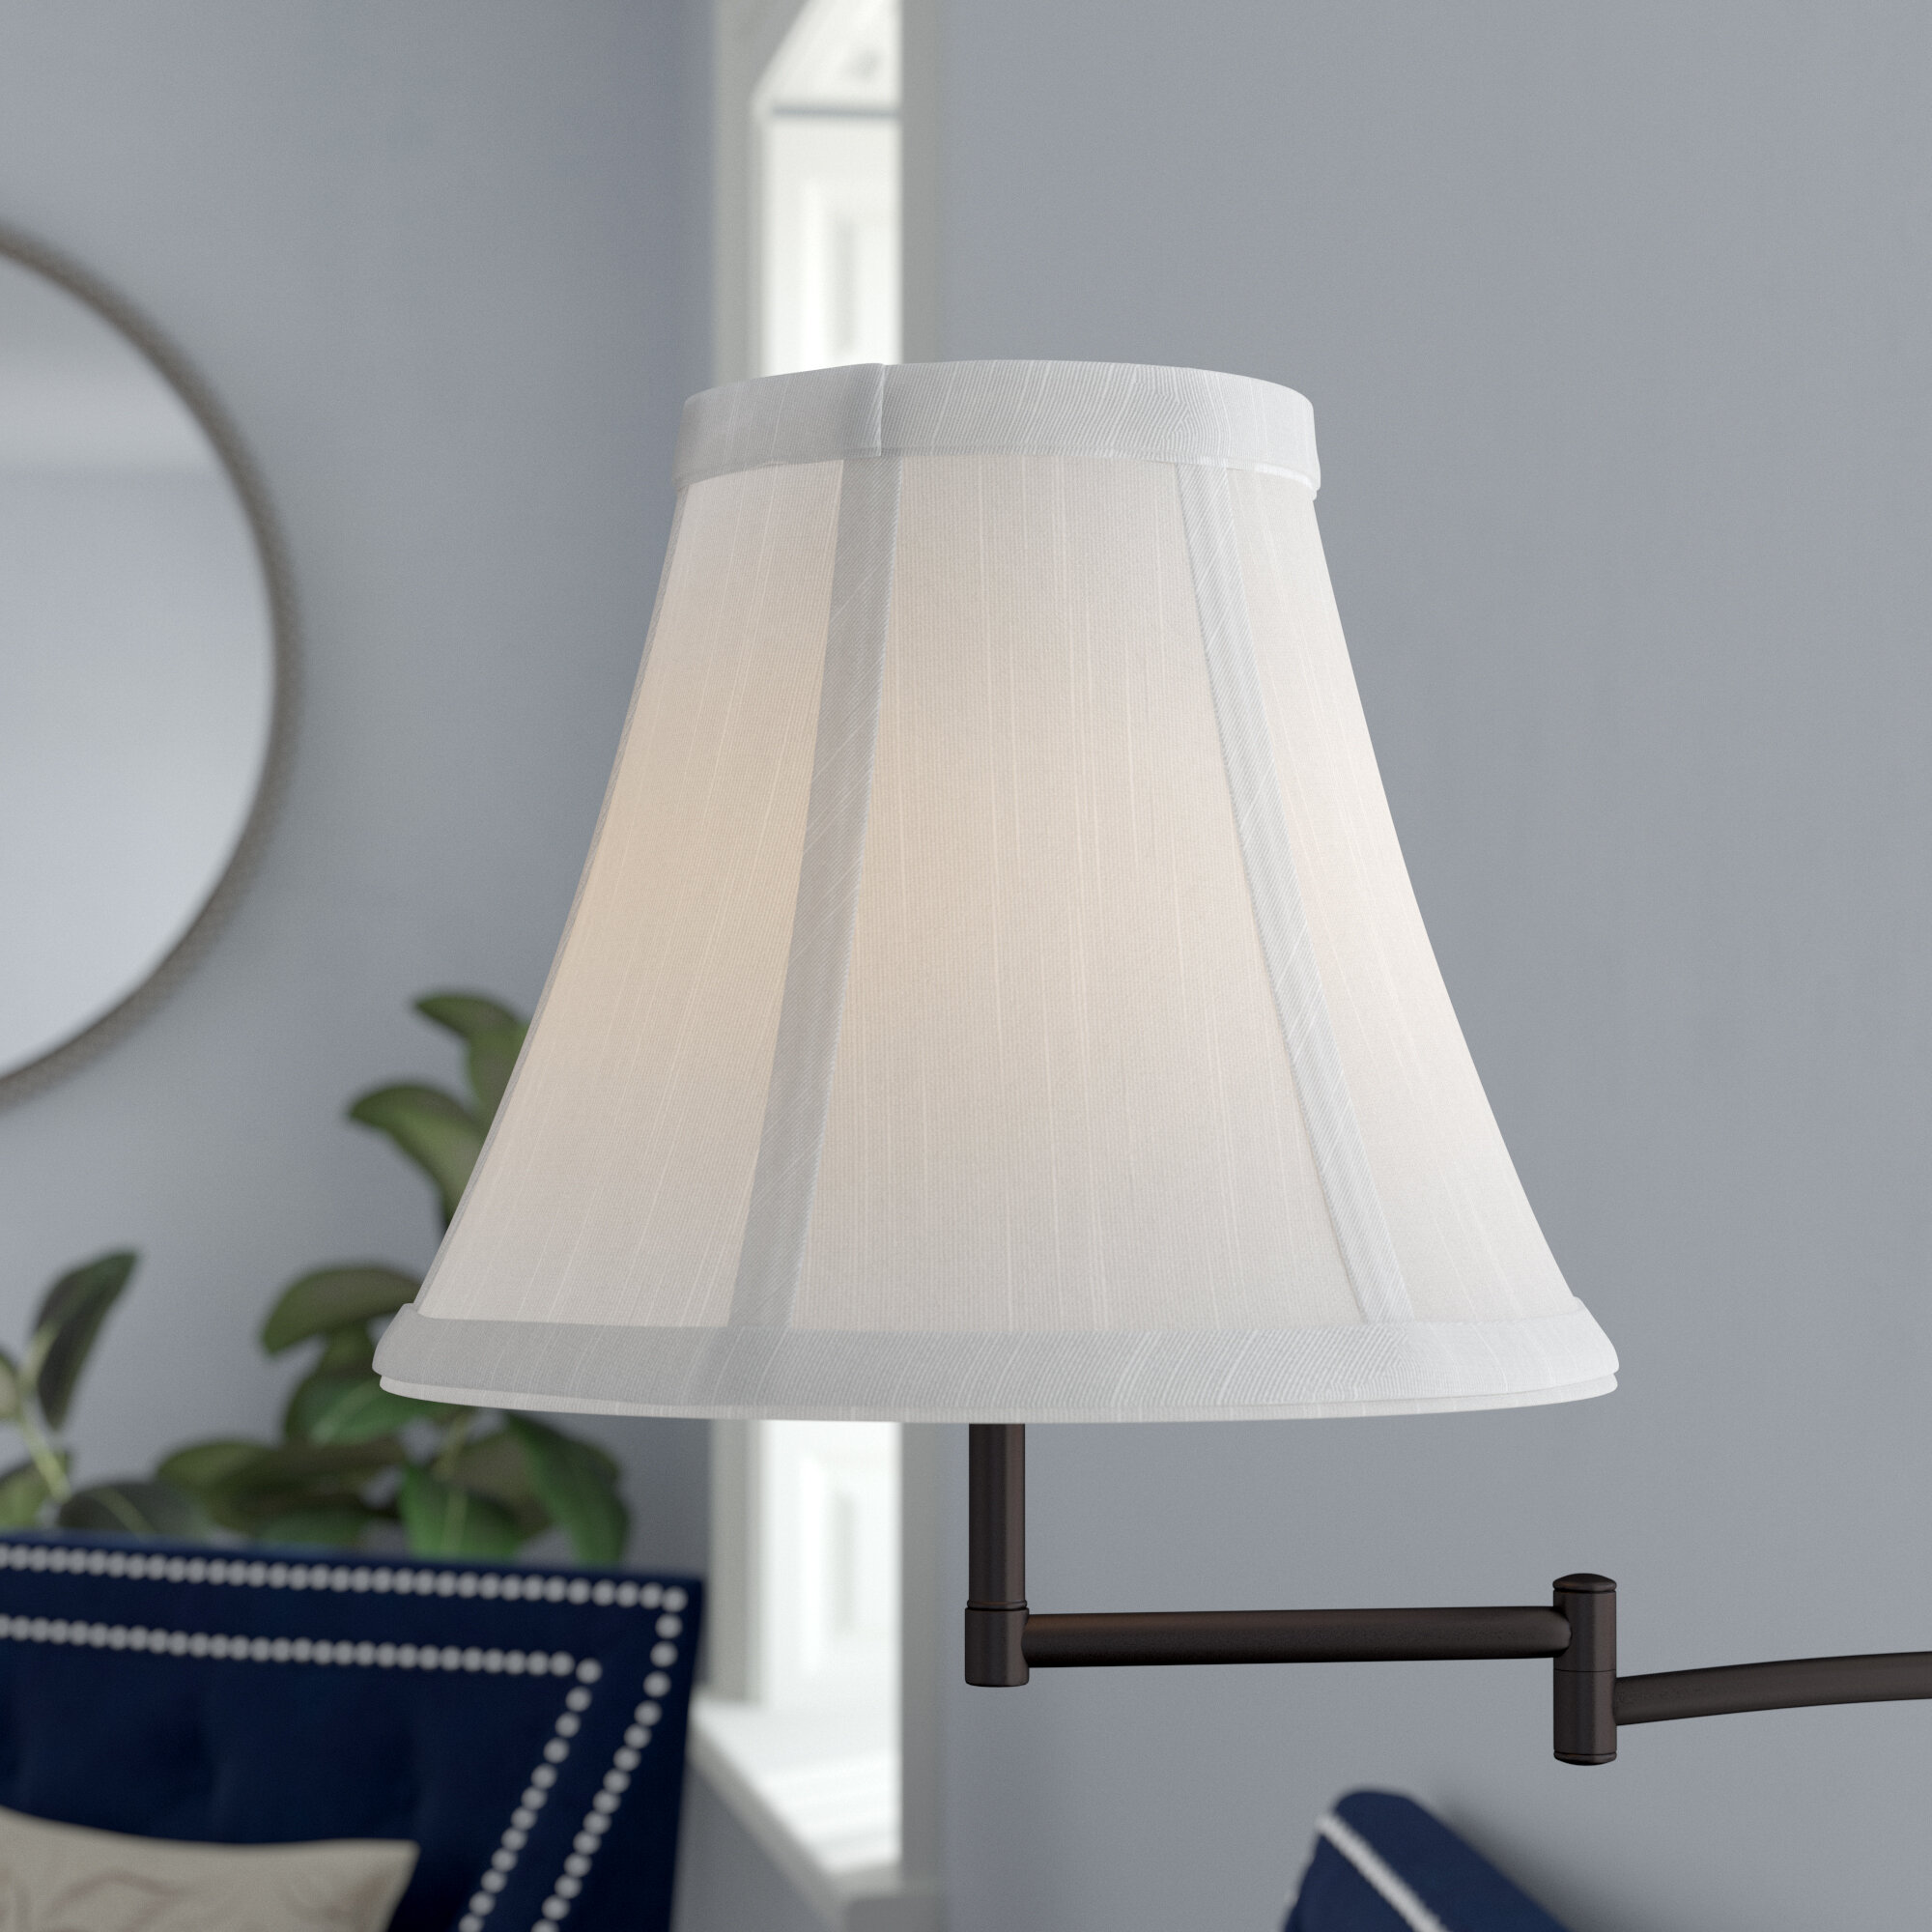 Cream Softback Accent Shade Lamp Light Accessory Lampshade Modern Bell Decor New